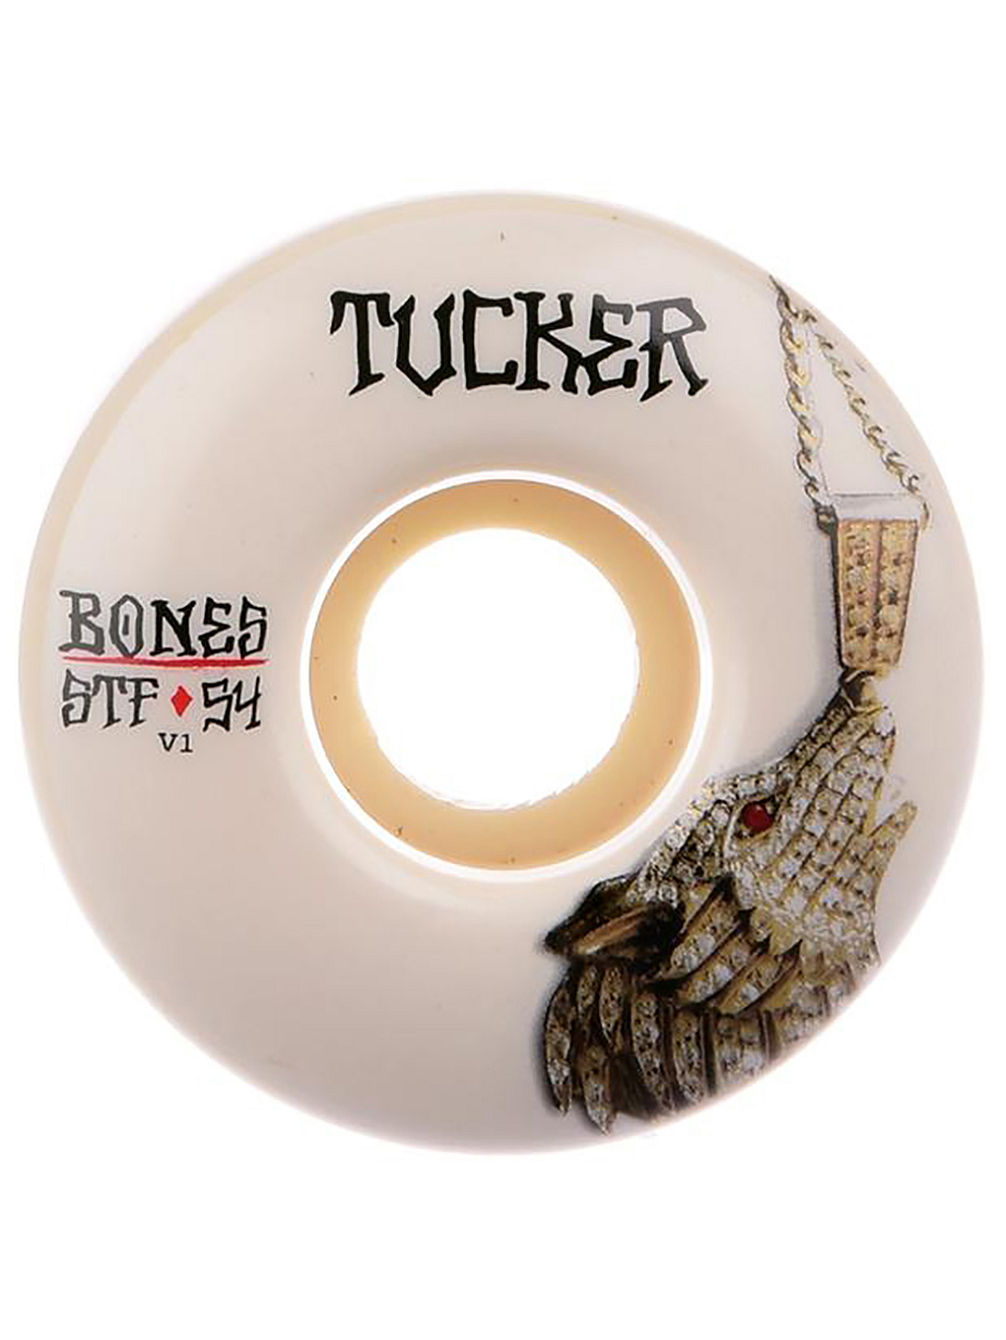 Stf Tucker Wolf Chain 83B V1 54mm Wheels